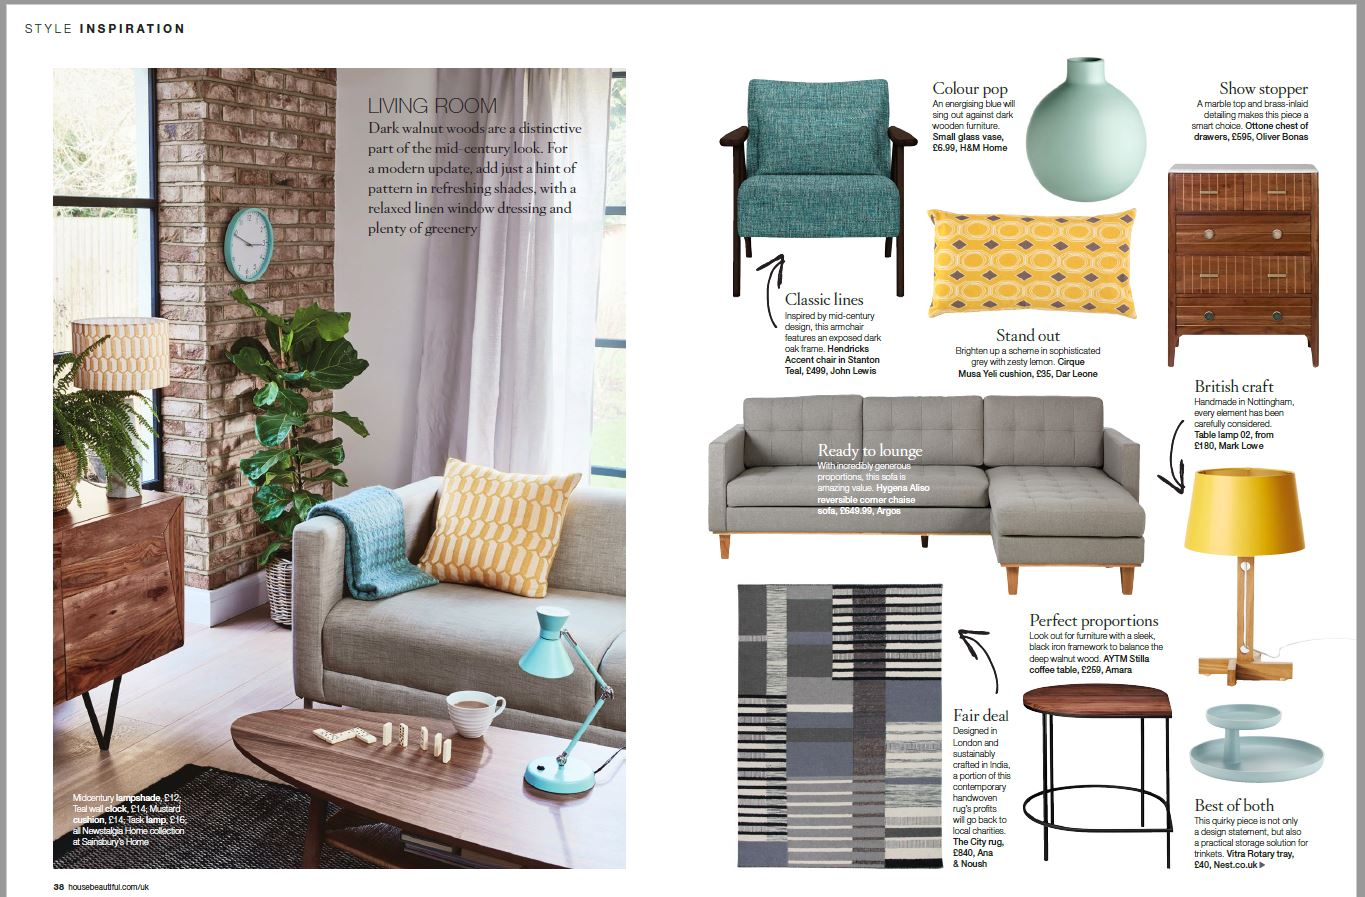 As featured in House Beautiful September 2018 -